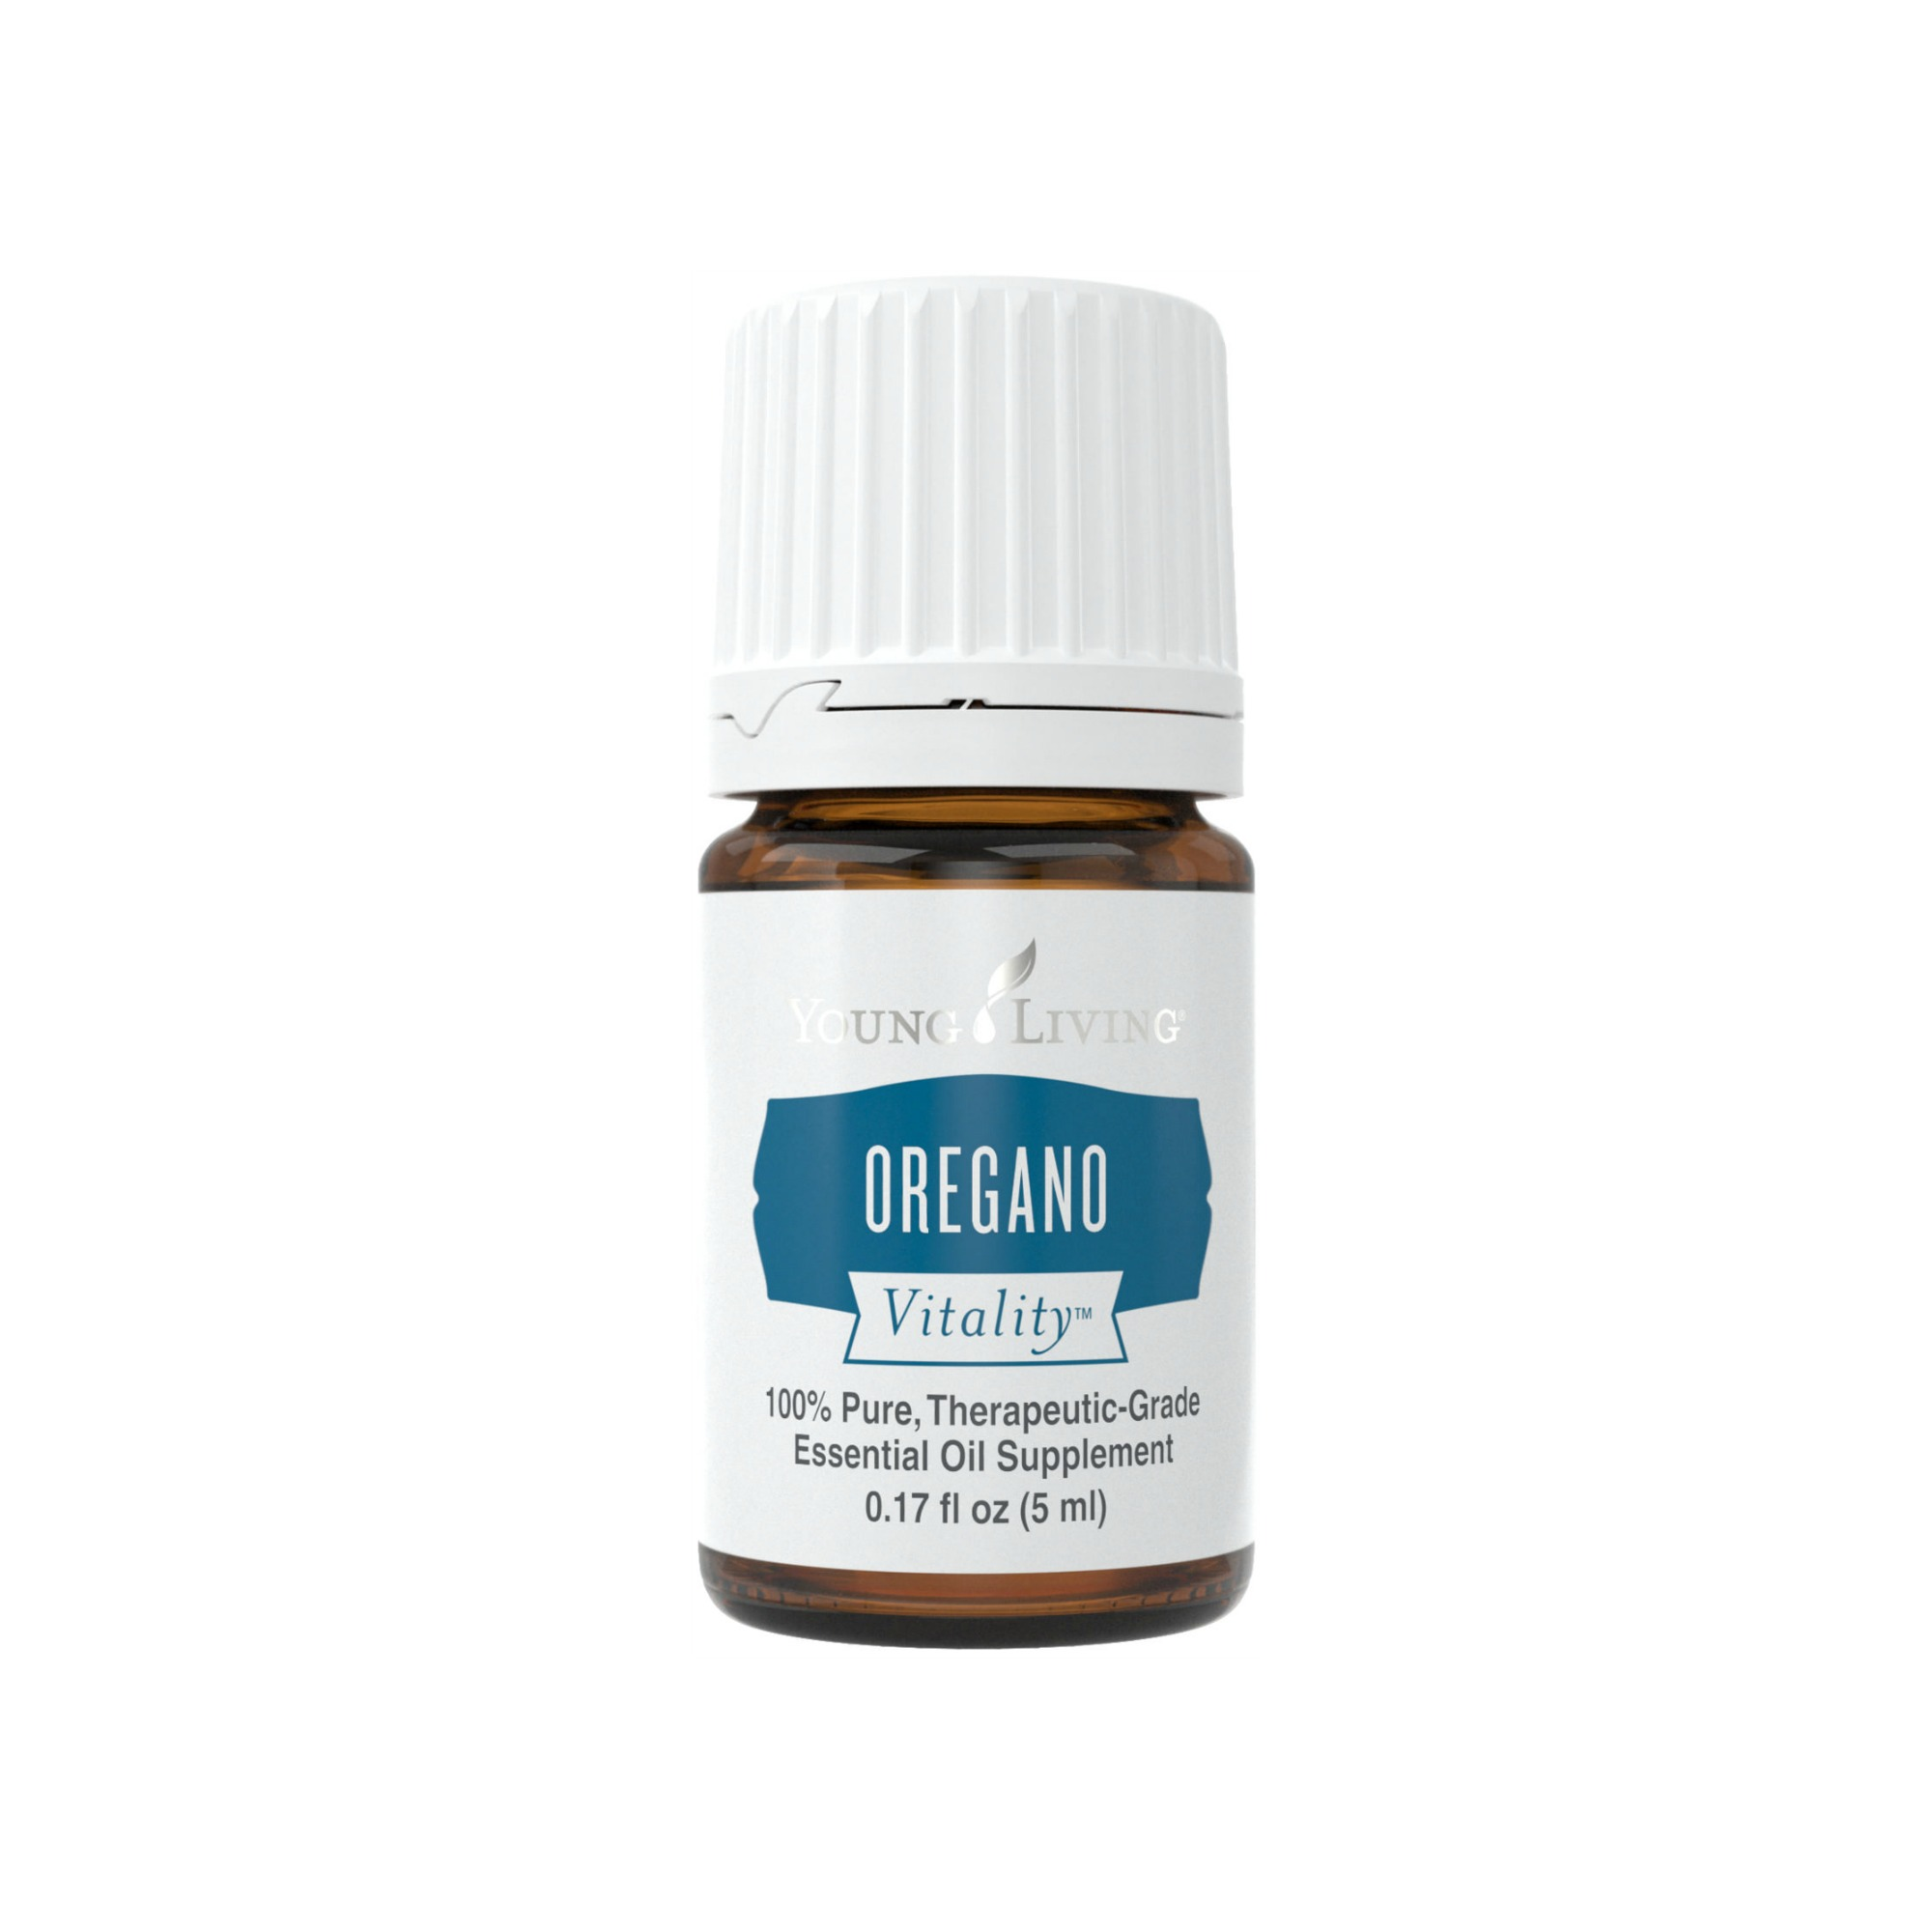 OREGANO VITALITY    Oregano Vitality essential oil does more than provide your meals with a depth of flavor; it may also support a healthy lifestyle when taken as a dietary supplement. Oregano Vitality makes flavoring savory dishes simple. With a distinctive, herbaceous flavor, it is an indispensable addition to Mediterranean and Mexican cuisines, though it can enhance the flavors in all your favorite recipes, from grilled chicken to roasted vegetables.   Click here   to learn more about this product.